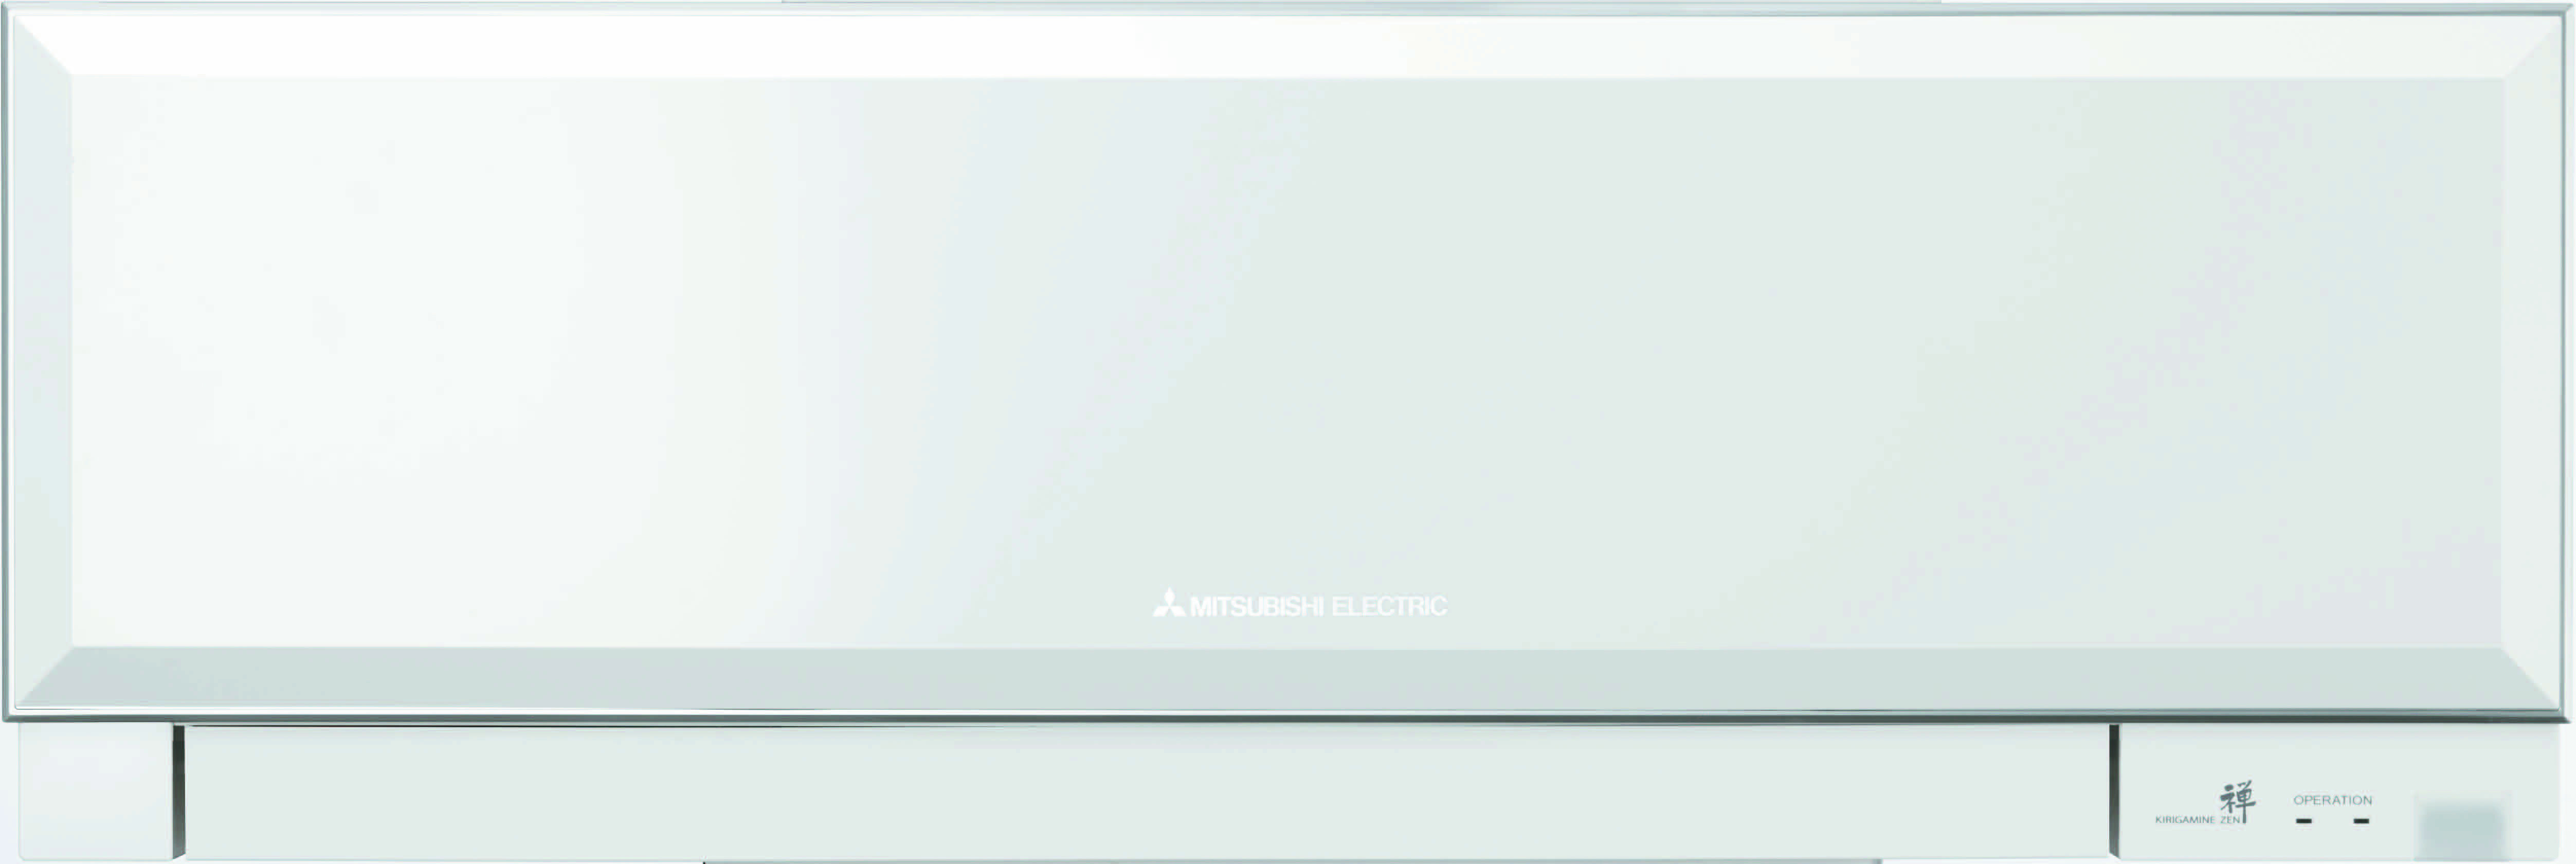 Mitsubishi Electric Reverse Cycle Ducted Amp Split Systems